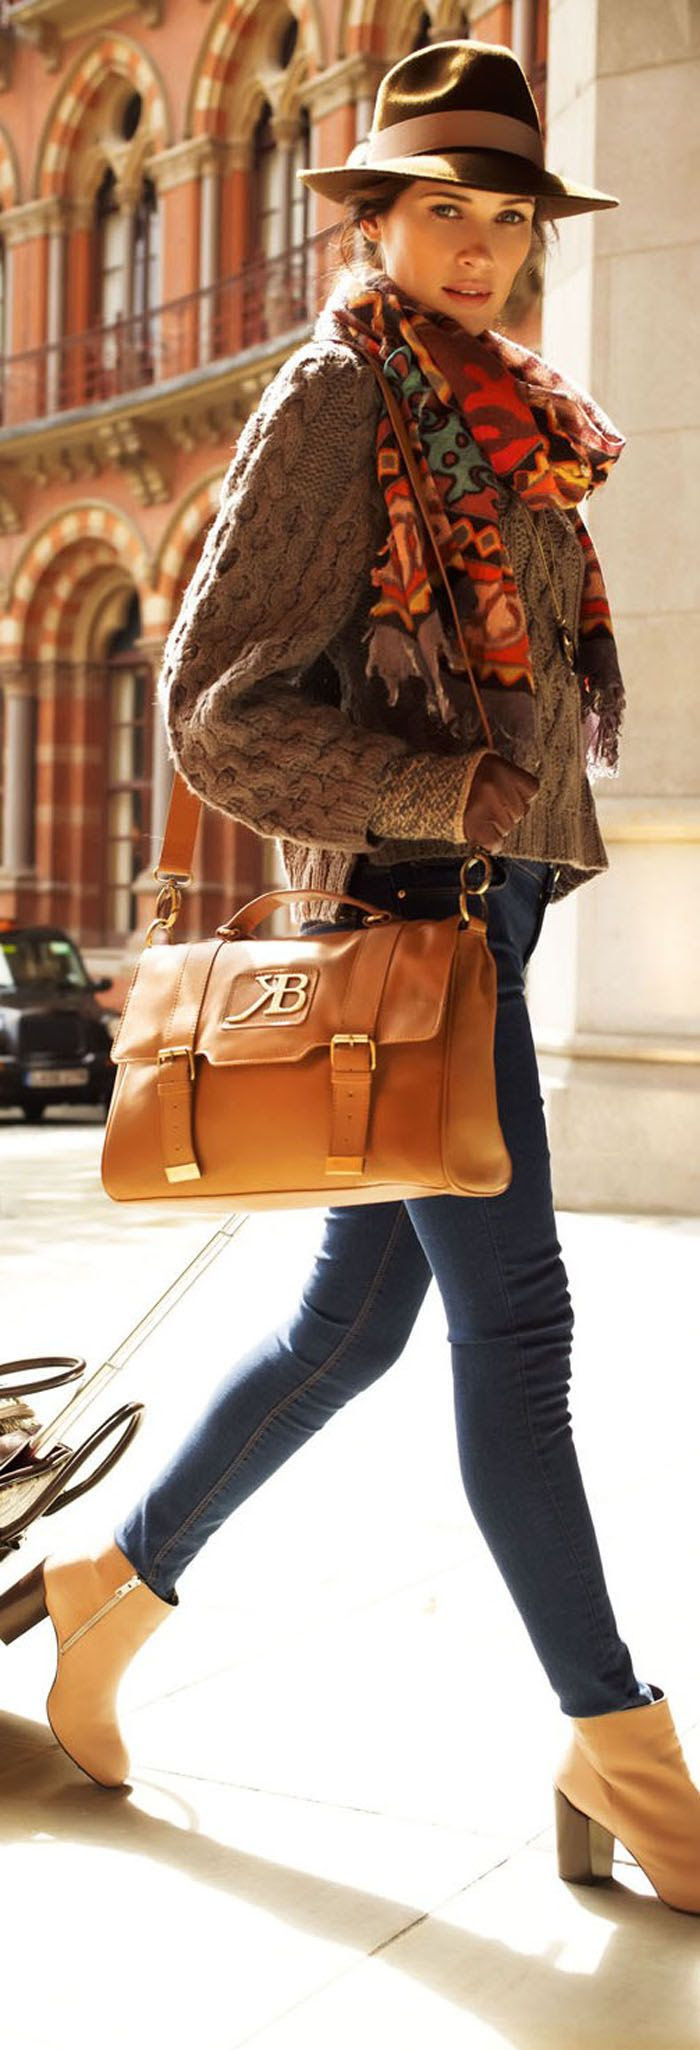 # Fall And Winter Fashion  http://www.pinterest.com/katelyntaylor1/fall-and-winter-fashion/